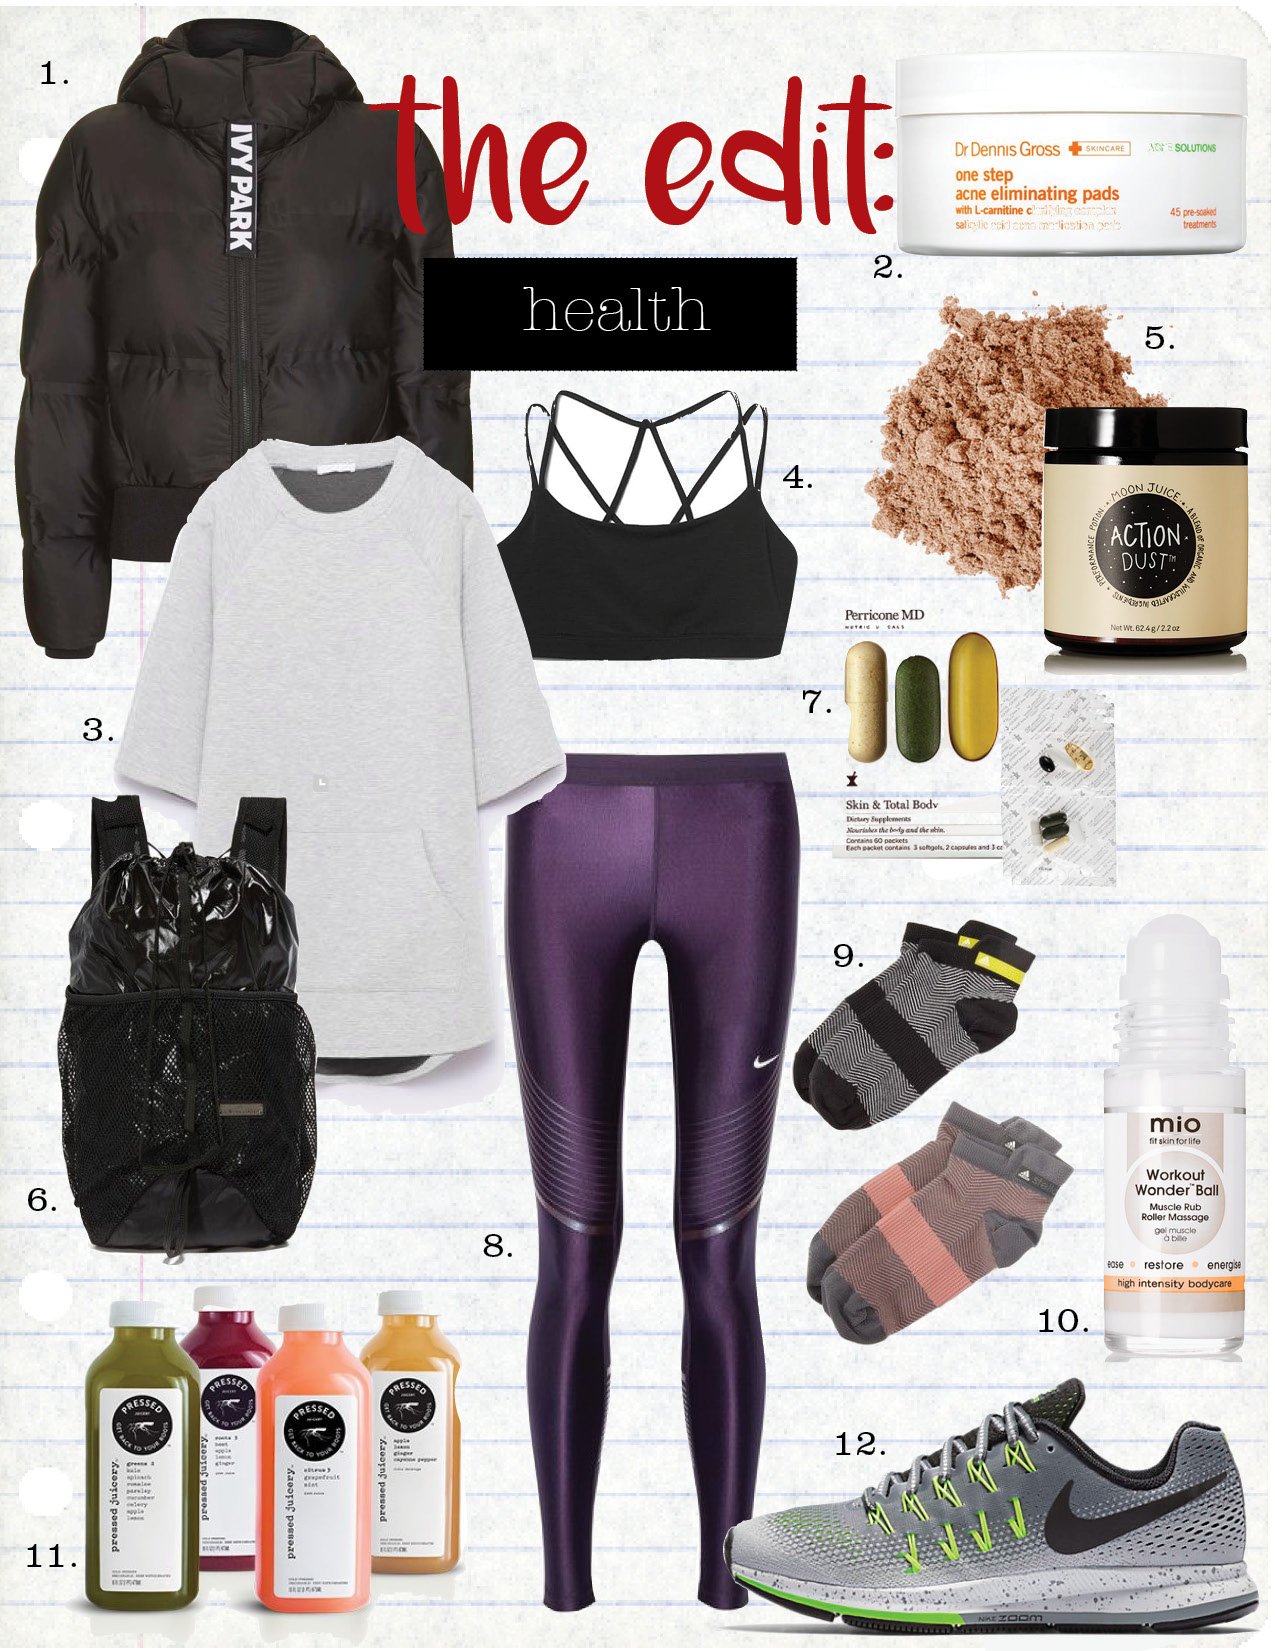 1. ivy park cropped hooded puffer, $190,  topshop.com  2. dr. gross one step acne eliminating pads, $38,  sephora.com  3. zara sweatshirt with pockets, $12,  zara.com  4. gap strappy sports bra, $19,  gap.com  5. moon juice action dust, $55,  net-a-porter.com  6. adidas by stella mccartney run backpack, $120,  shopbop.com  7. perricone md skin & total body dietary supplements, $155,  sephora.com  8. nike power speed stretch-jersey leggings, $150,  net-a-porter.com  9. adidas by stella mccartney herringbone socks, $28,  shopbop.com  10. mio skincare workout wonder ball, $40,  net-a-porter.com  11. pressed juicery 3-day cleanse, $99,  pressedjuicery.com  12. nike air zoom pegasus 33 shield, $125,  nike.com